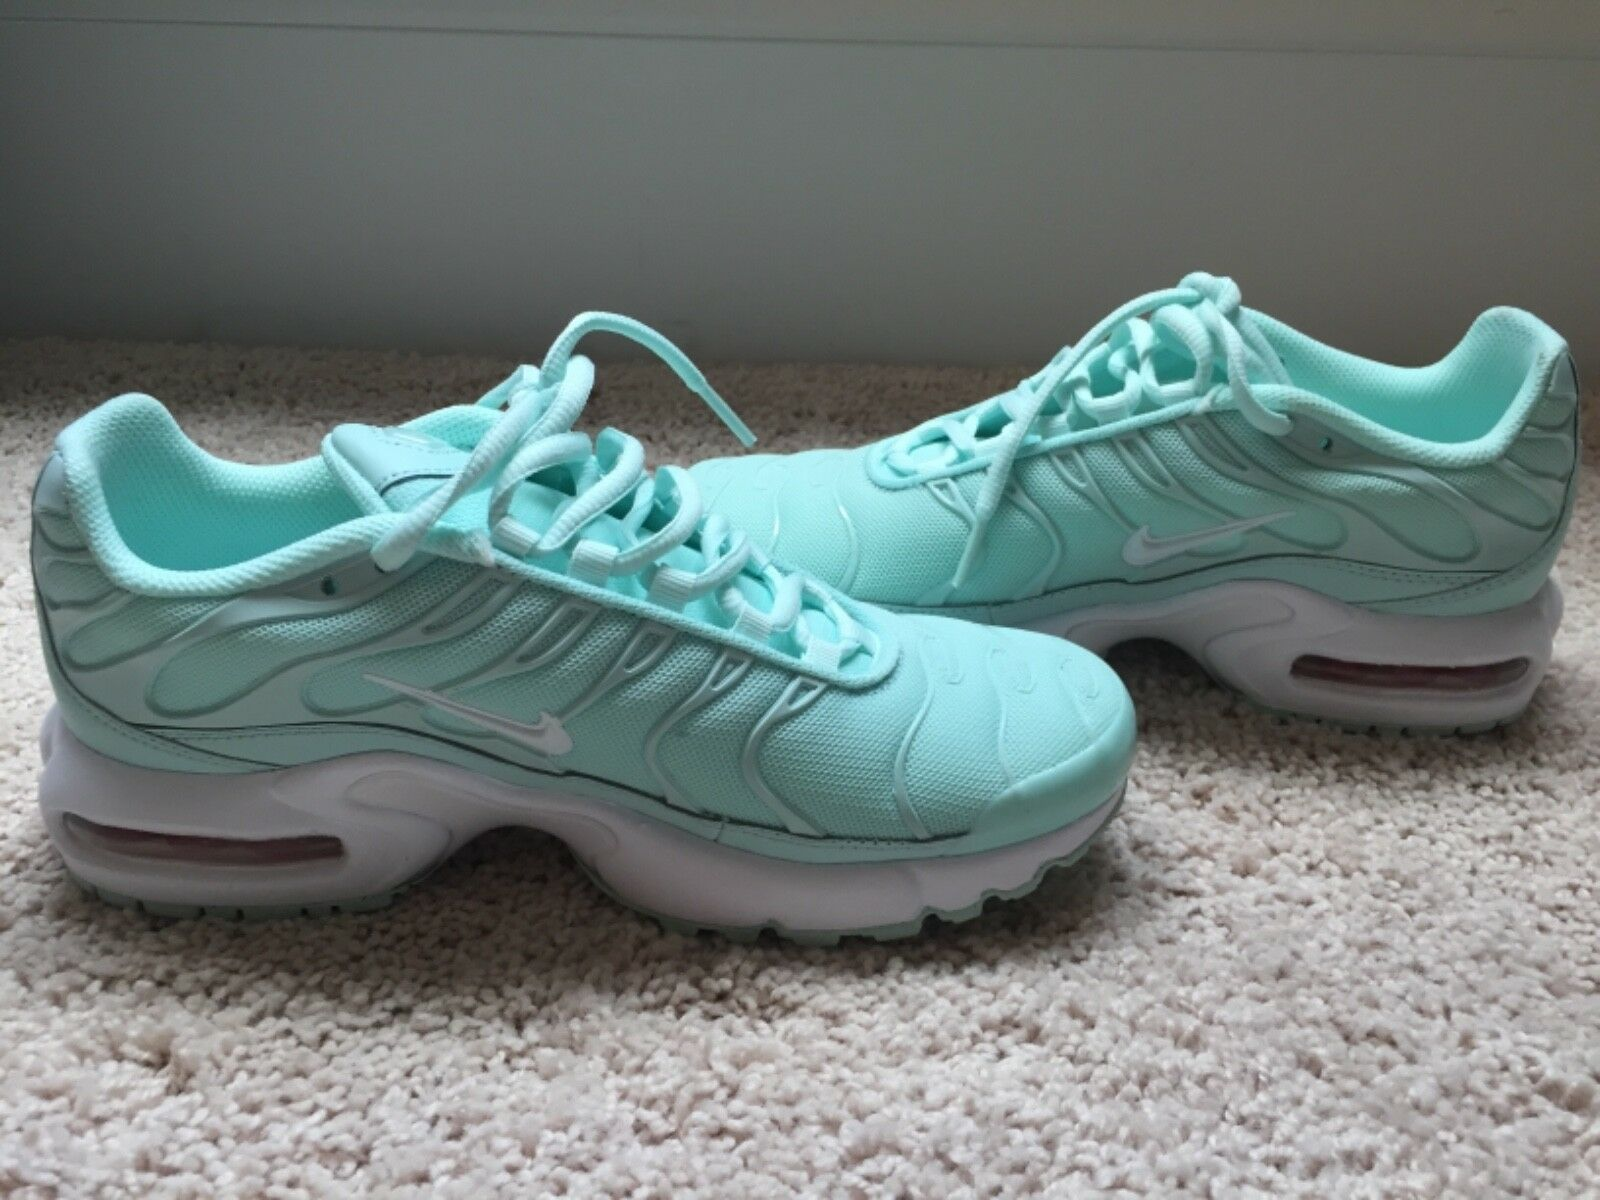 Womens bluee nikes shoes 7.5